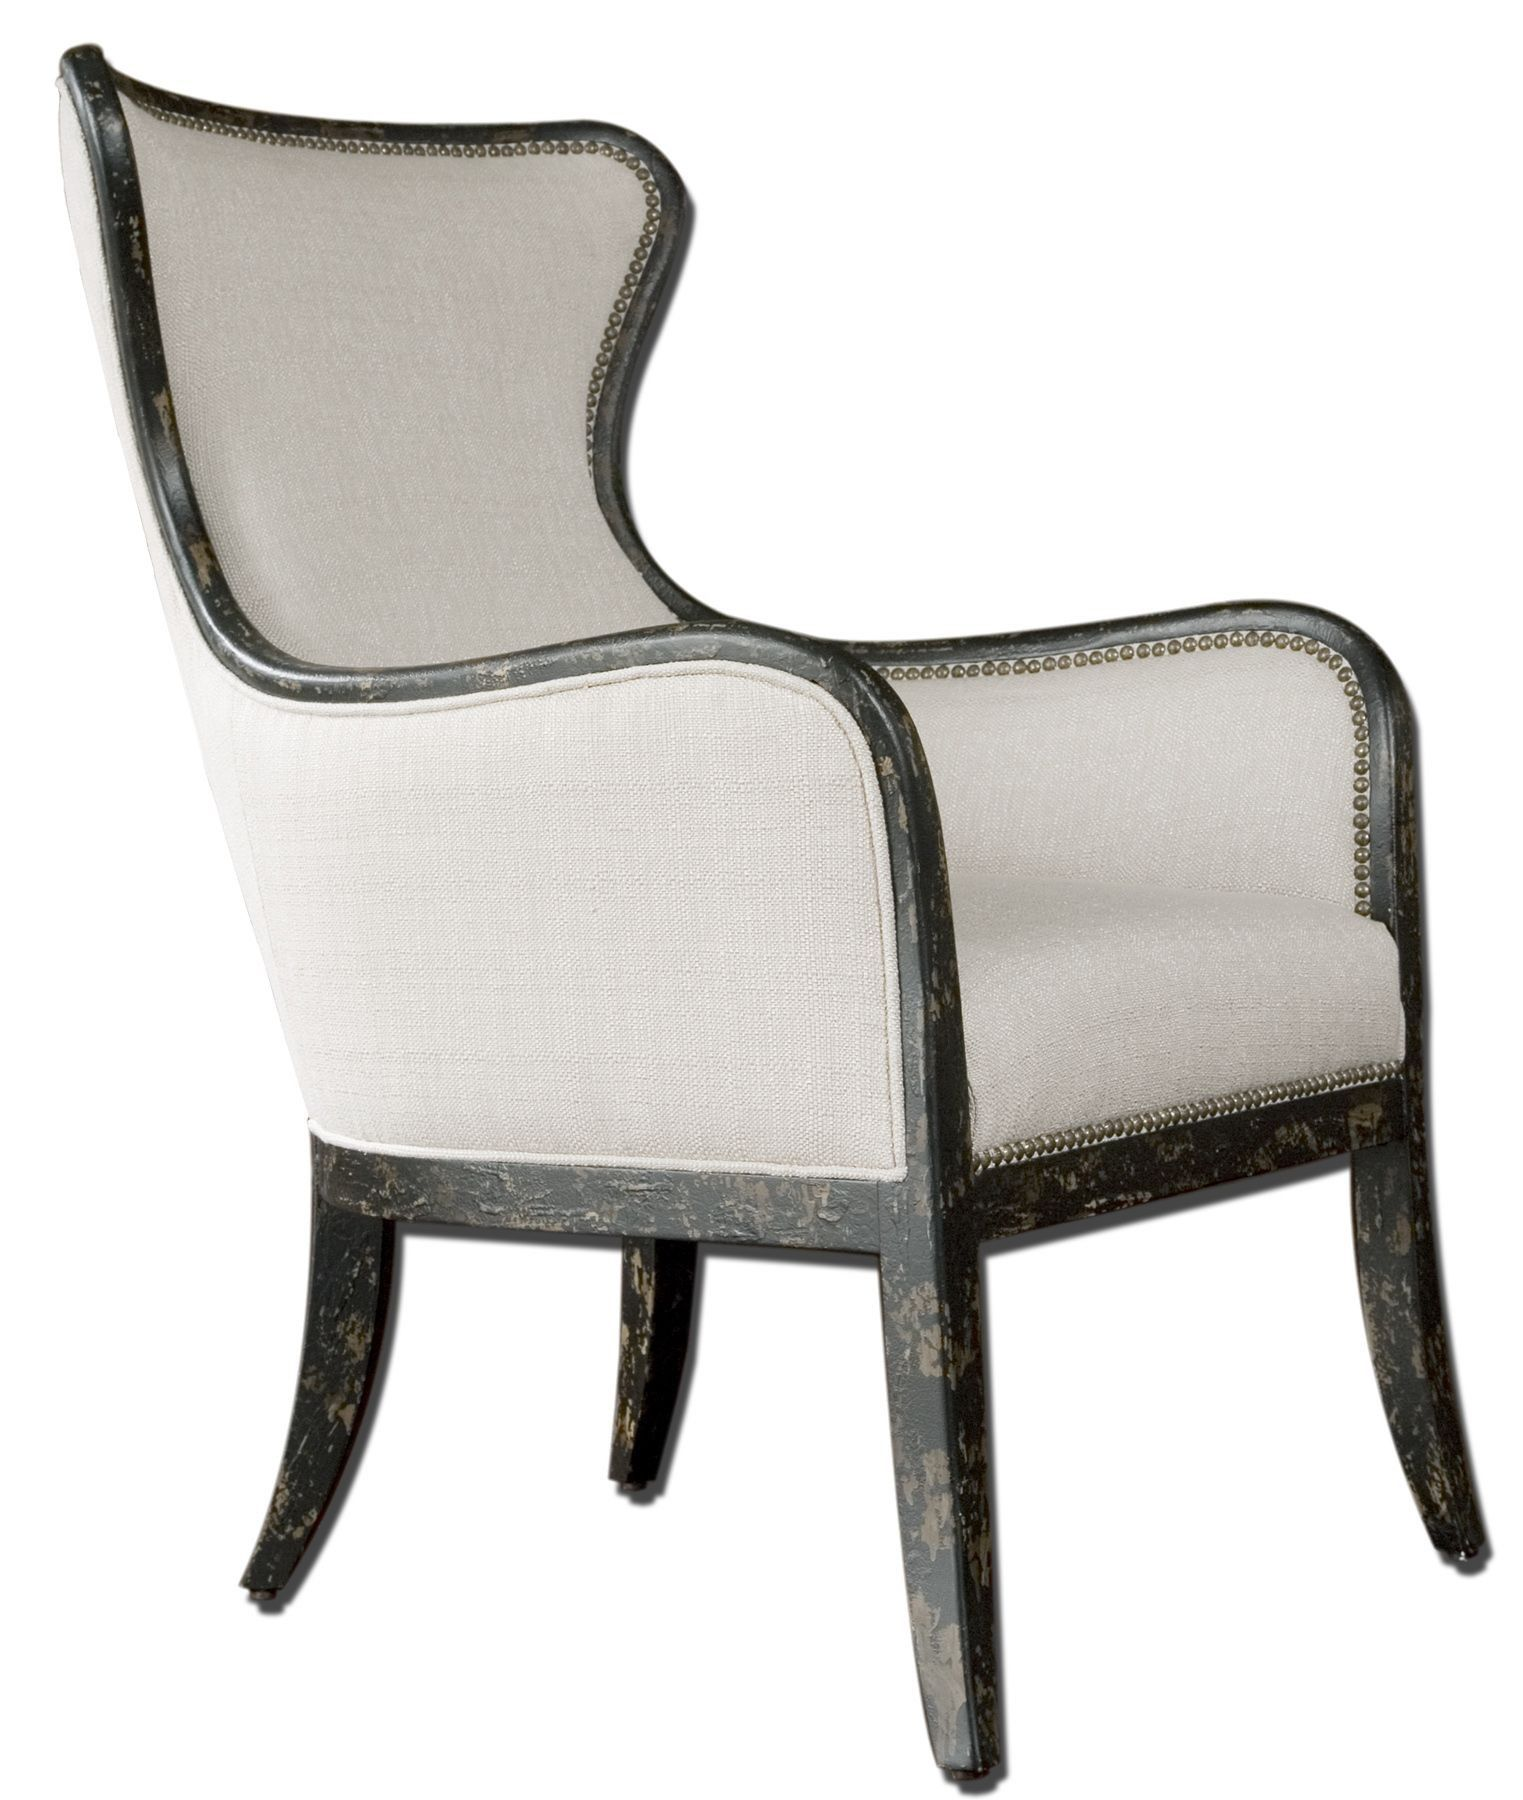 Awesome White Accent Chairs Under 200 With Inspiring Black Wood